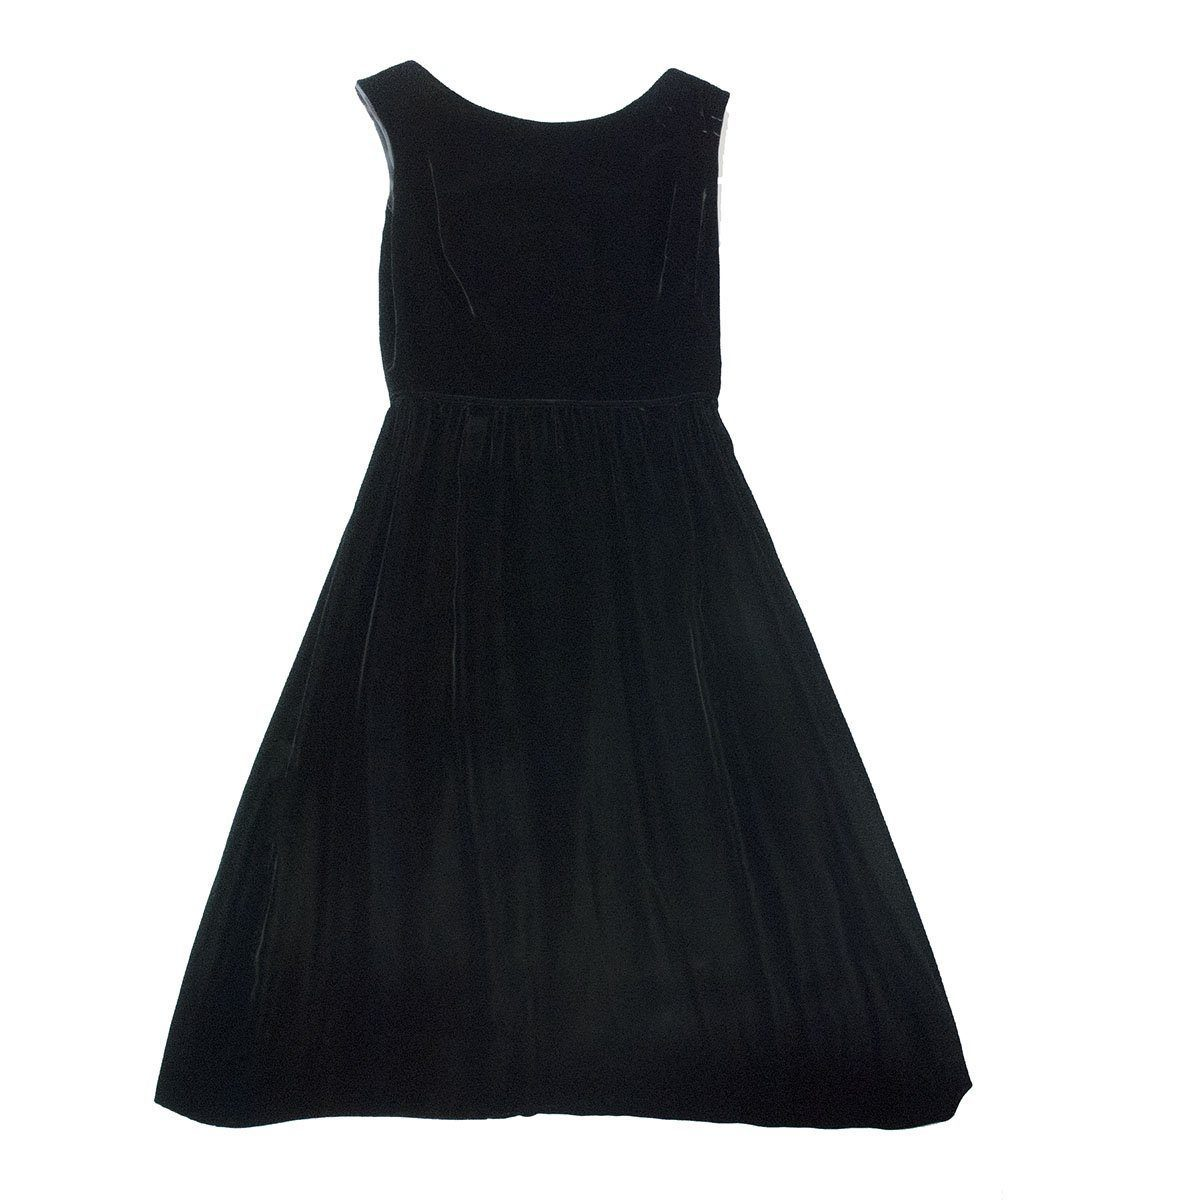 Vintage 1950s Jacques Heim Black Velvet Cocktail Dress, Extra Small